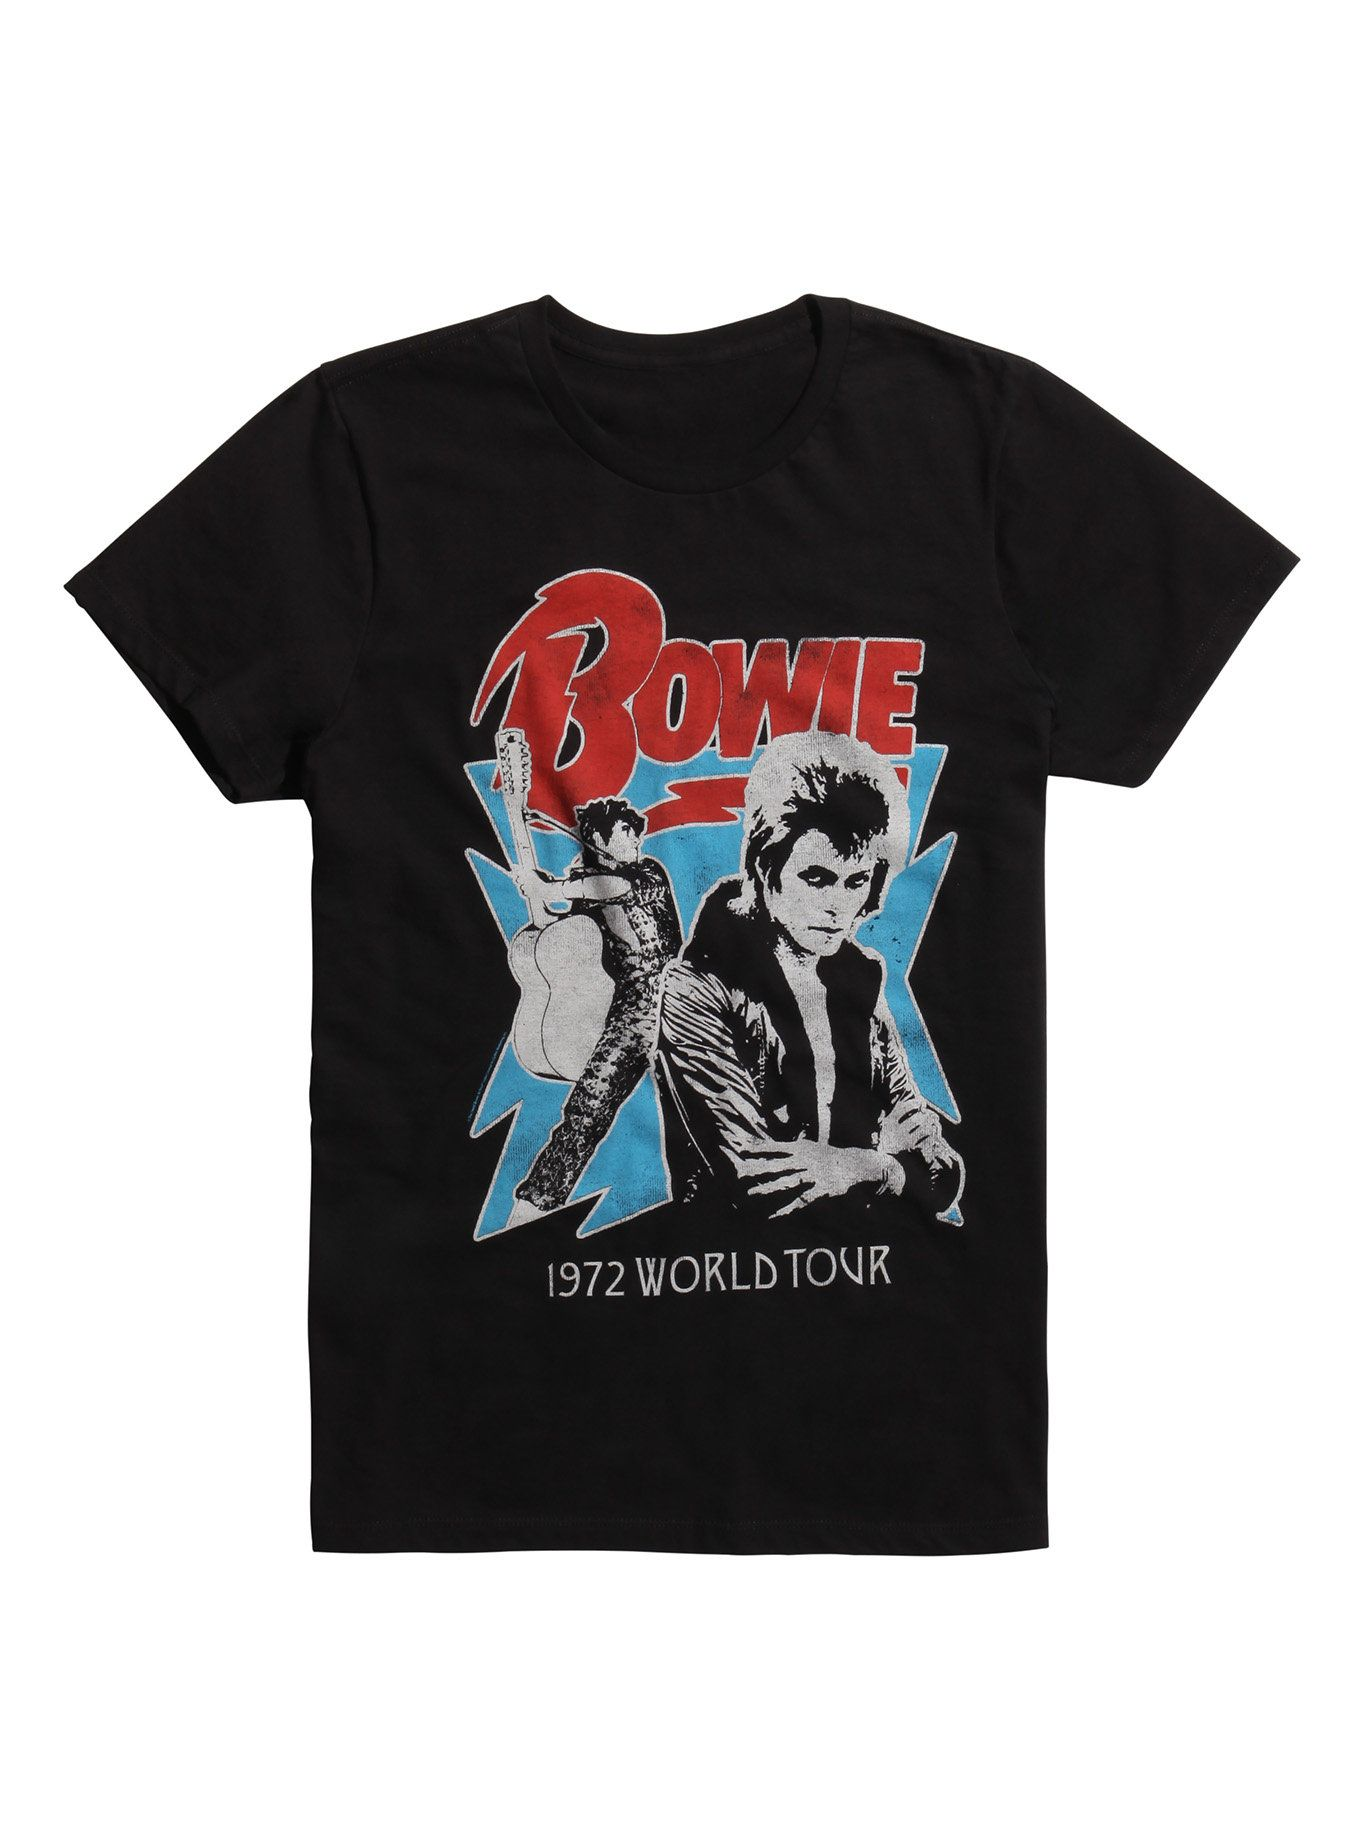 Black T Shirt From David Bowie Featuring Retro Style Front Amp Back Designs Commemorating The Ziggy Stardust Tour O David Bowie T Shirt T Shirt Tour T Shirts